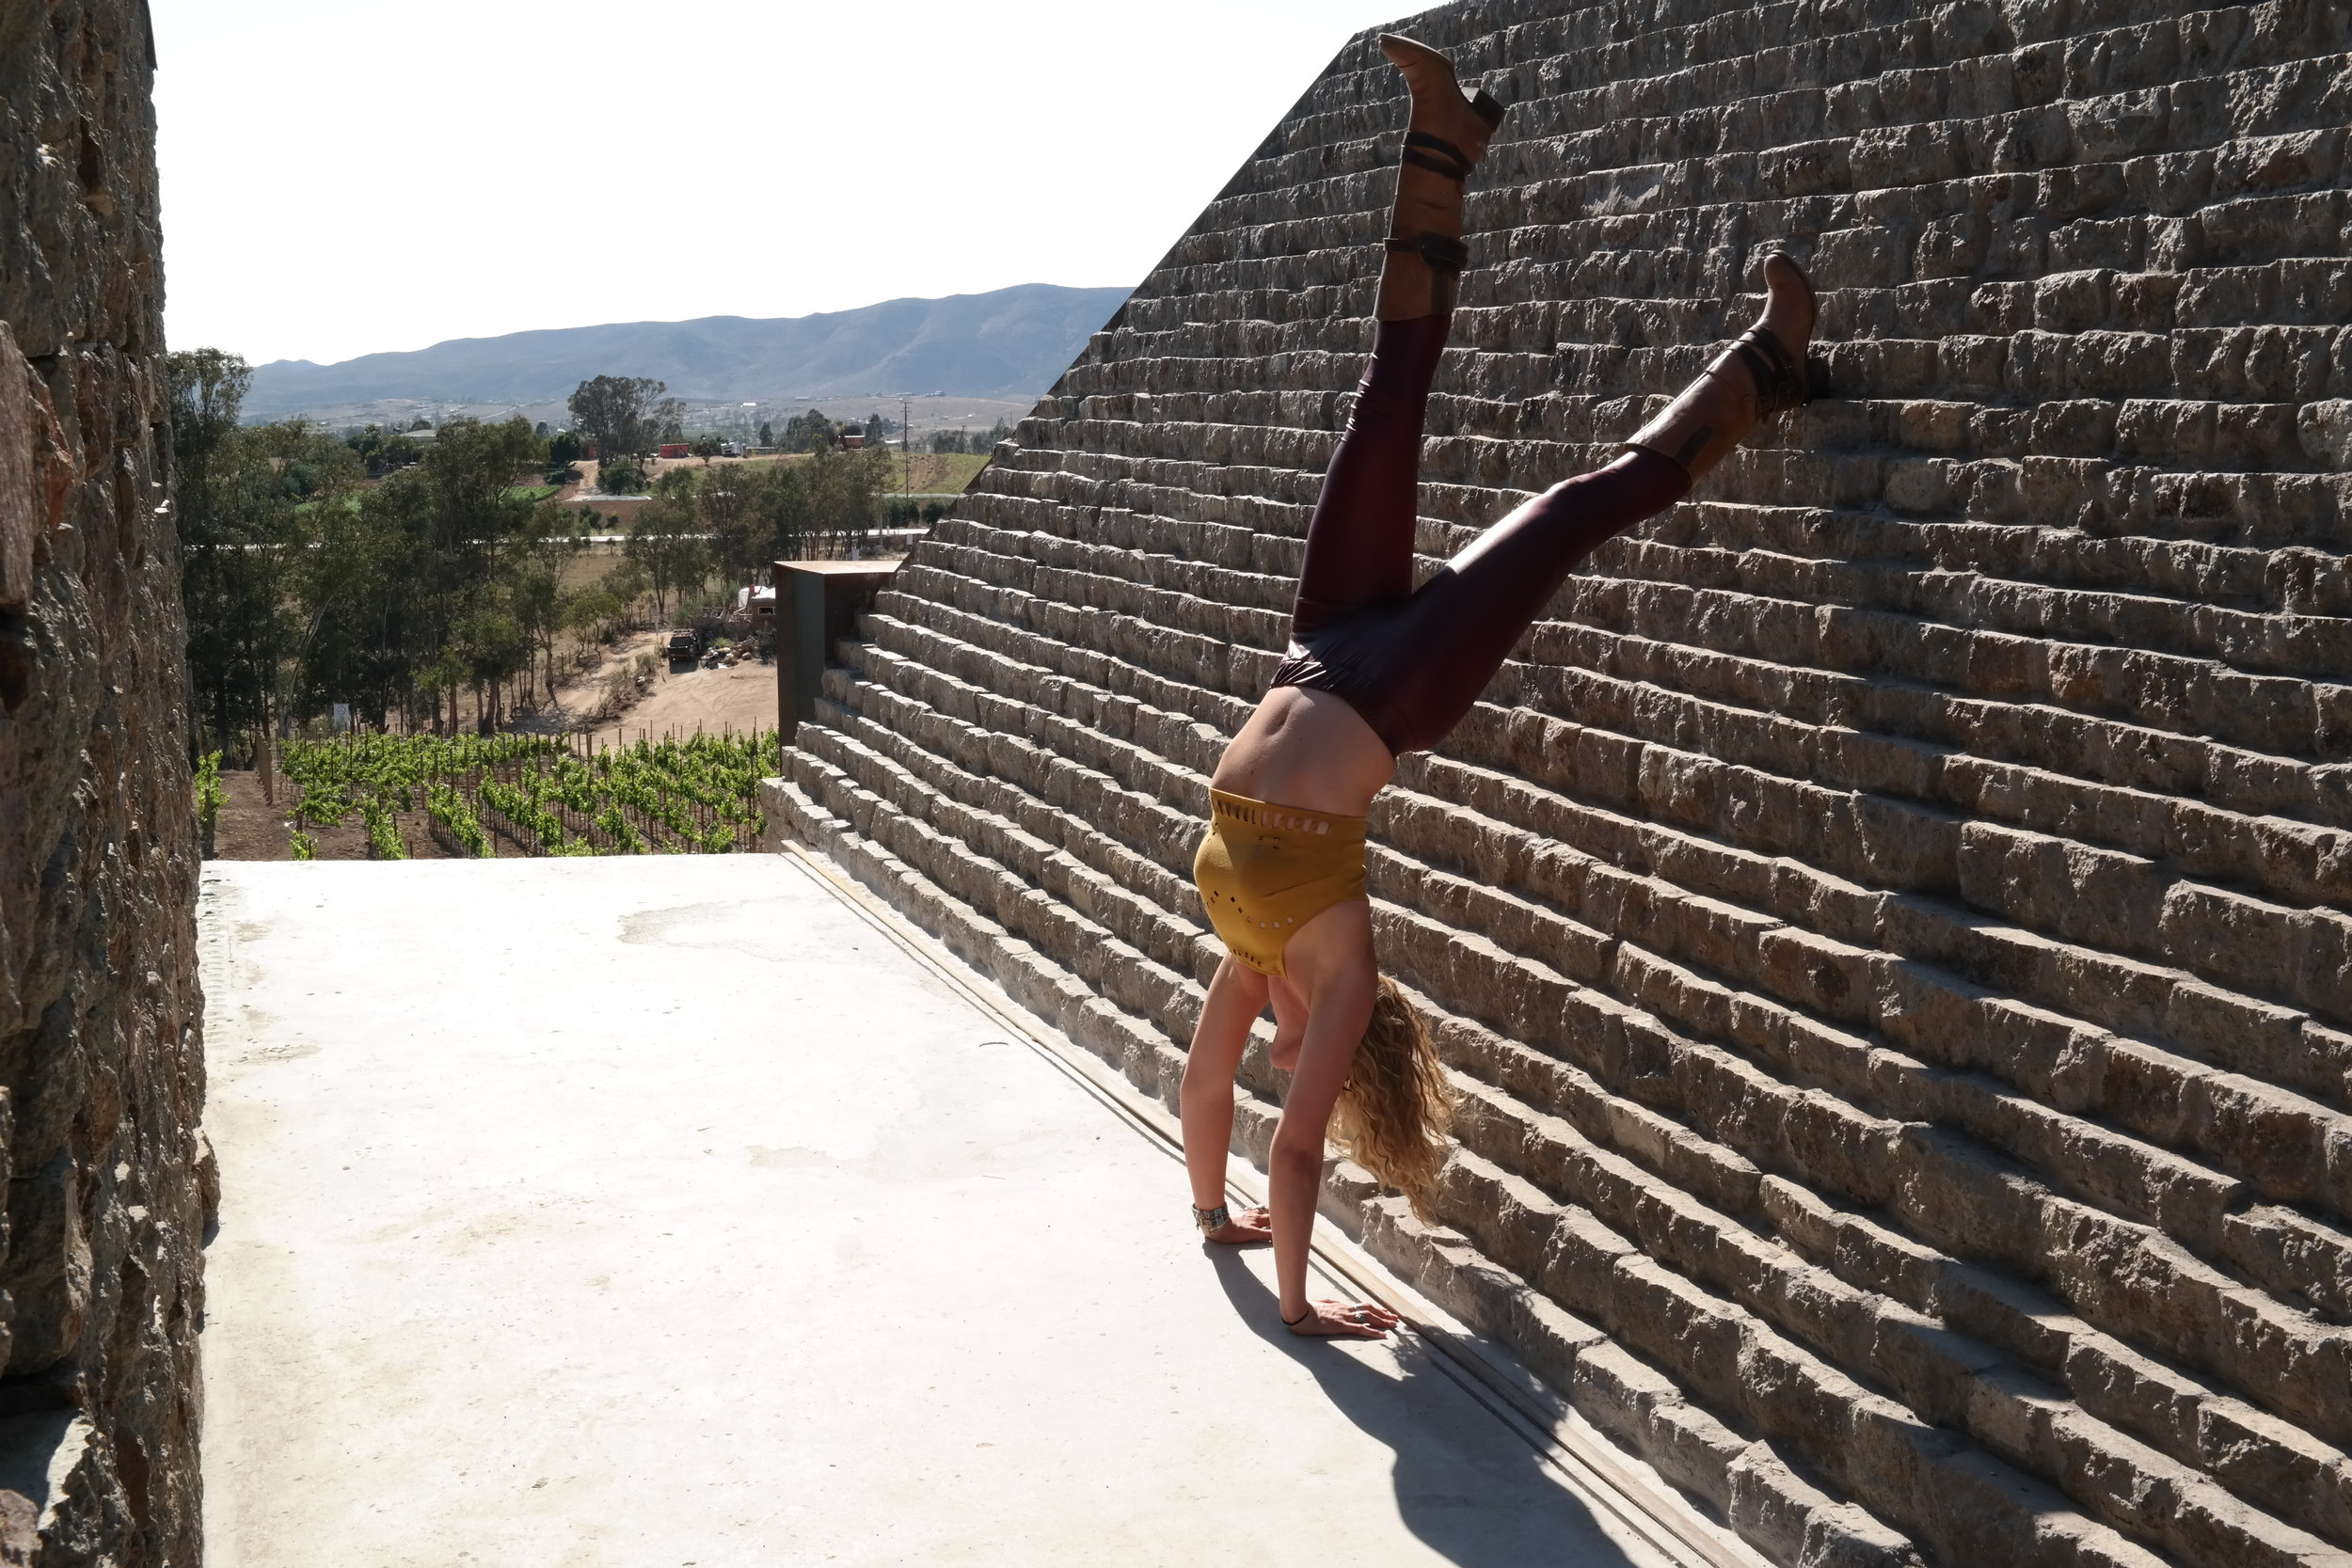 Playing on the pyramids of Clos de Tres Cantos, the wine did not help with alignment